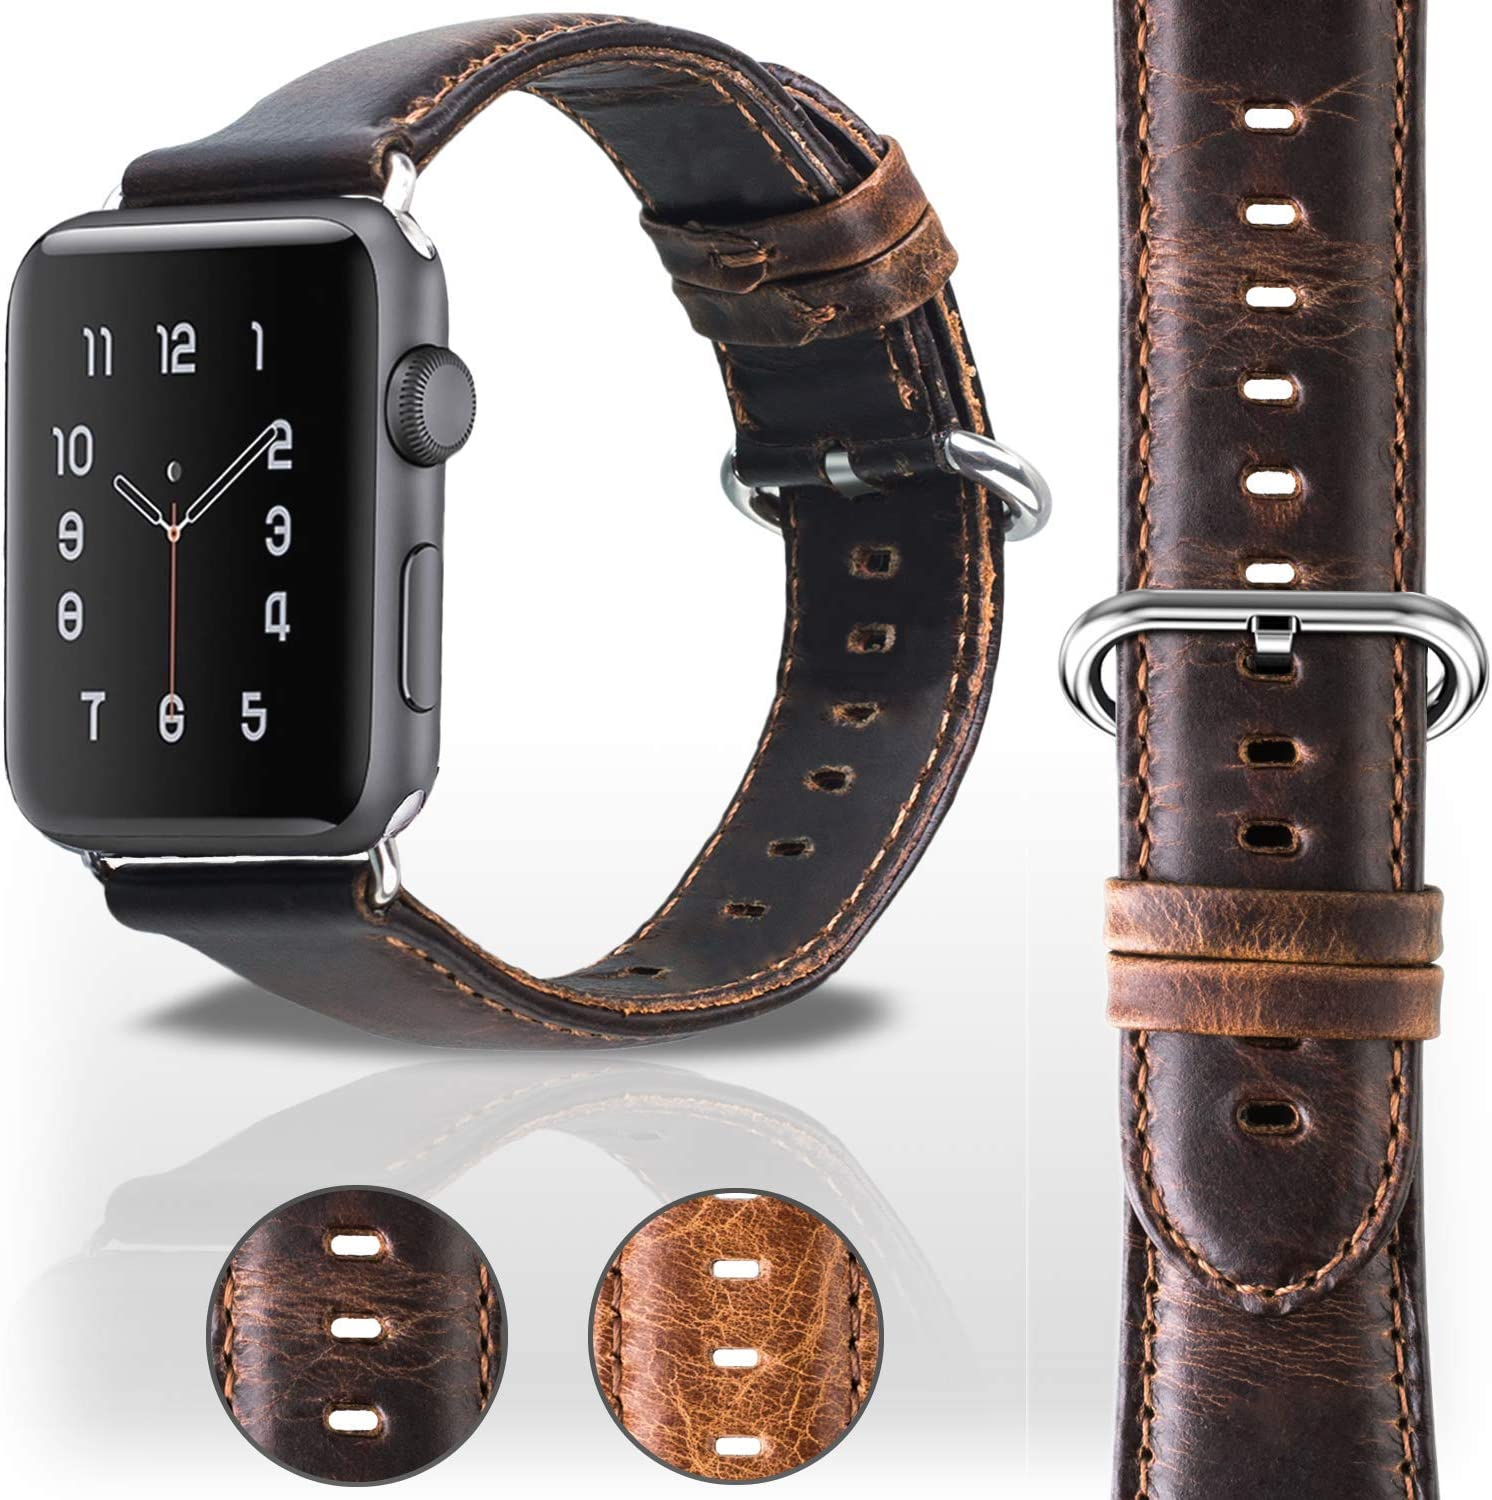 Veracelli compatible with Apple Watch Band 42mm 44mm - Mens and Womens Genuine Leather replacement for iWatch Bands - Series 4 Series 3 Series 2 Series 1 Apple Watch Strap - Dark Brown